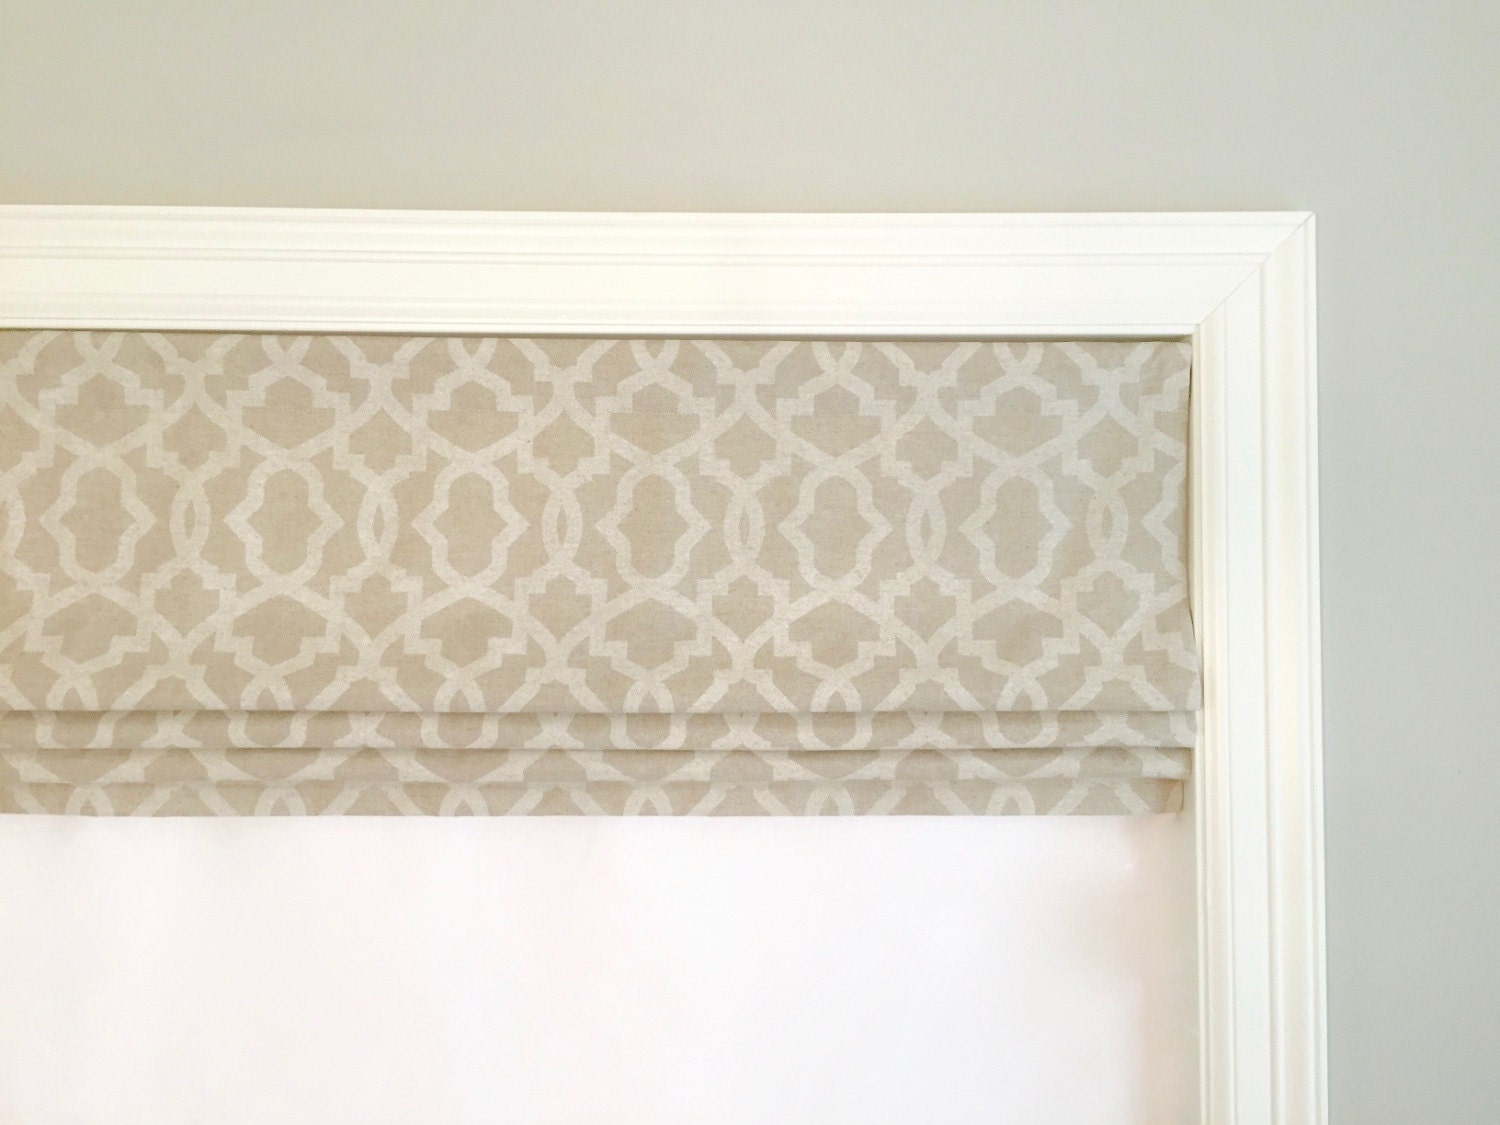 Fabric Roman Blinds With Valance